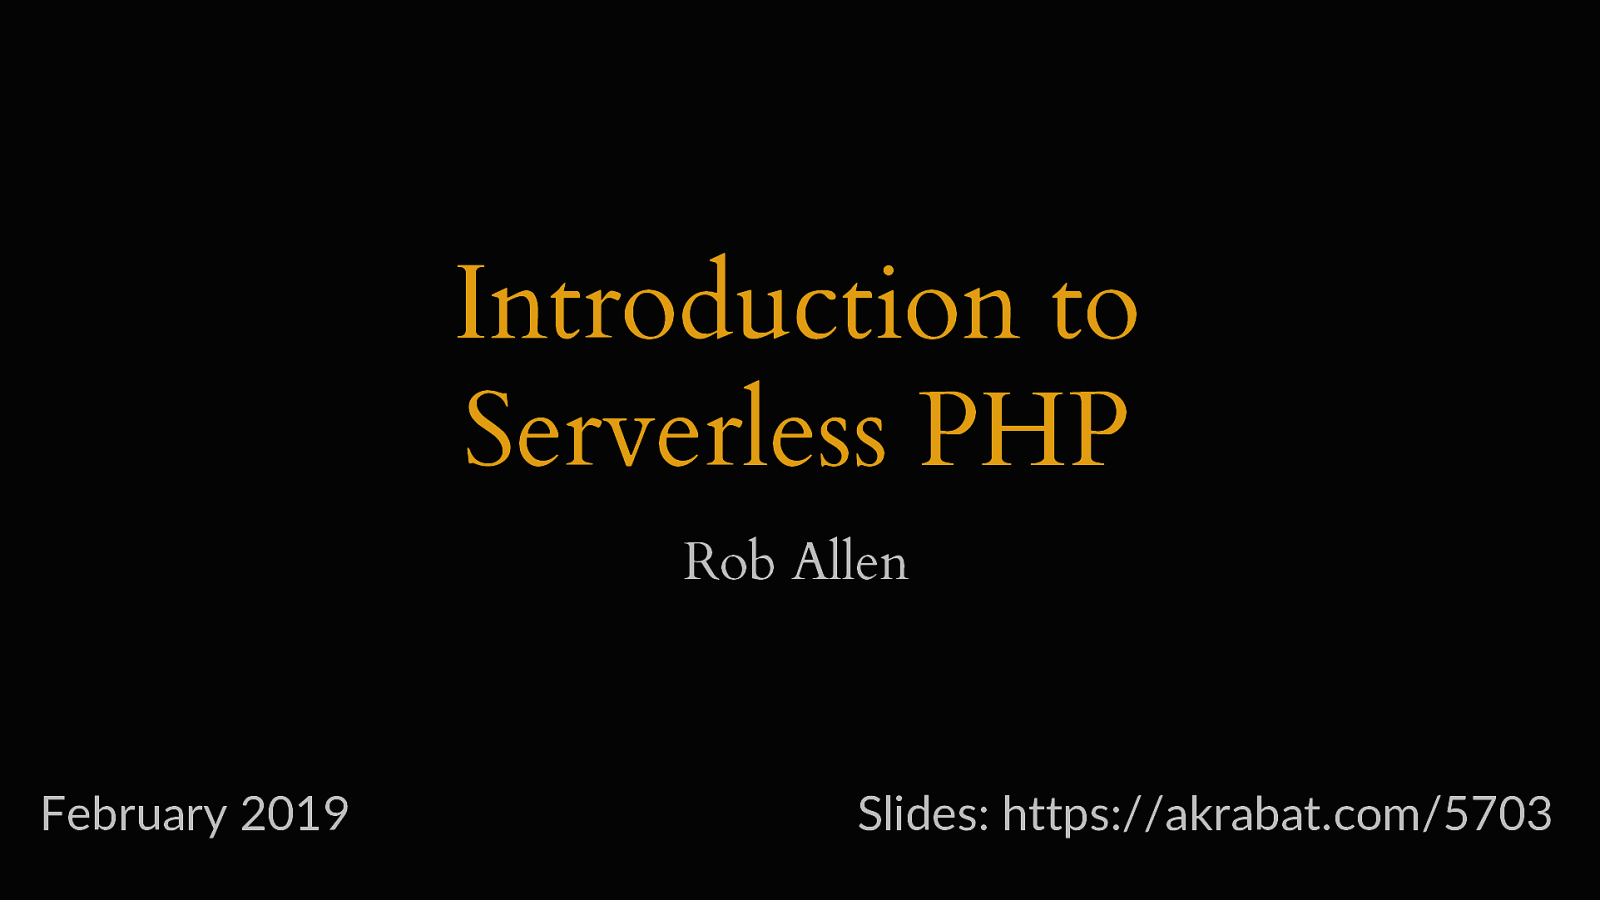 Introduction to Serverless PHP